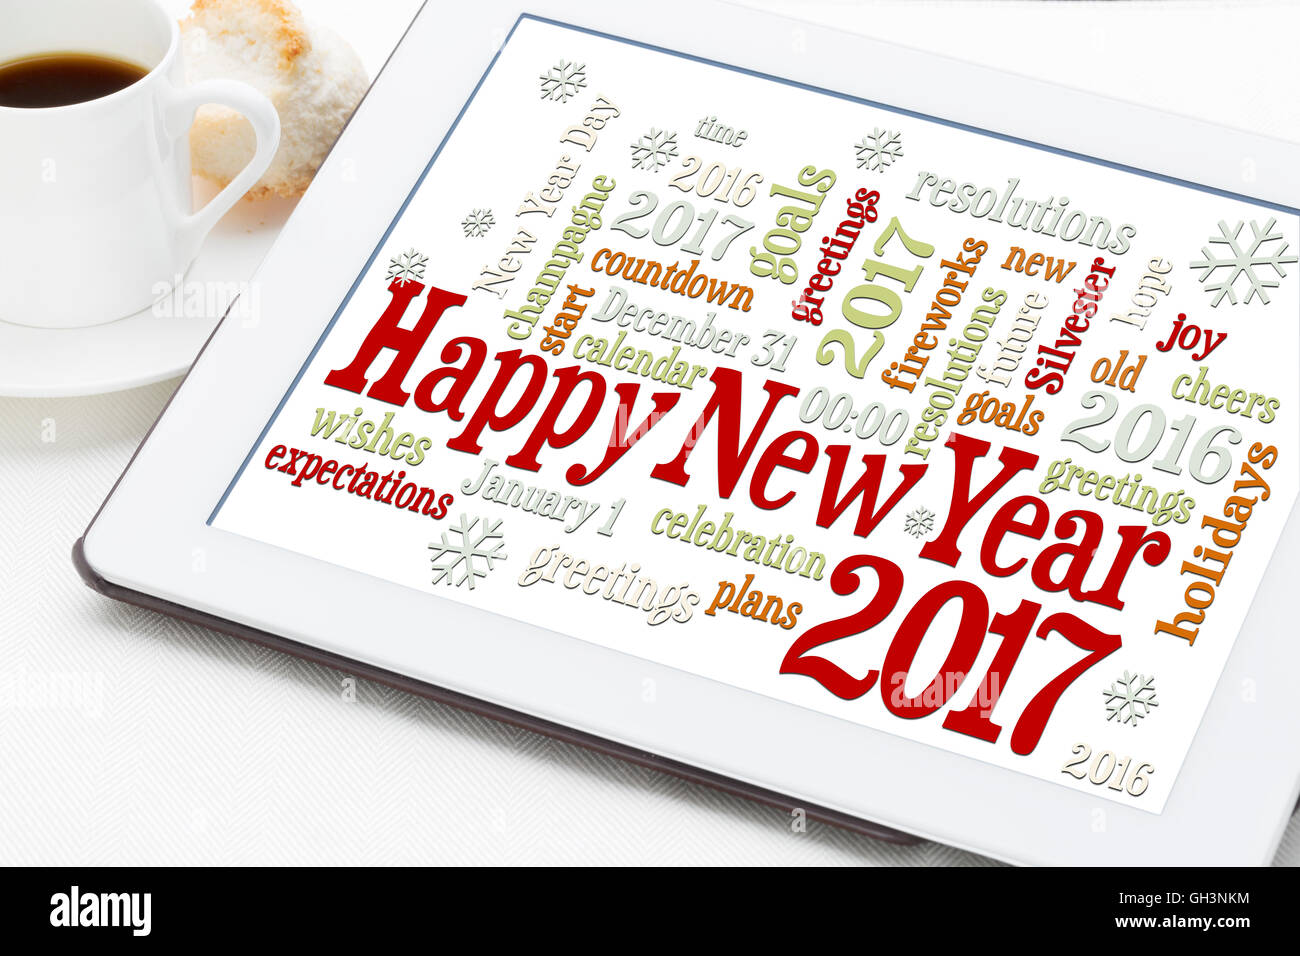 Happy New Year 2017 greetings - word cloud on a digital tablet with ...